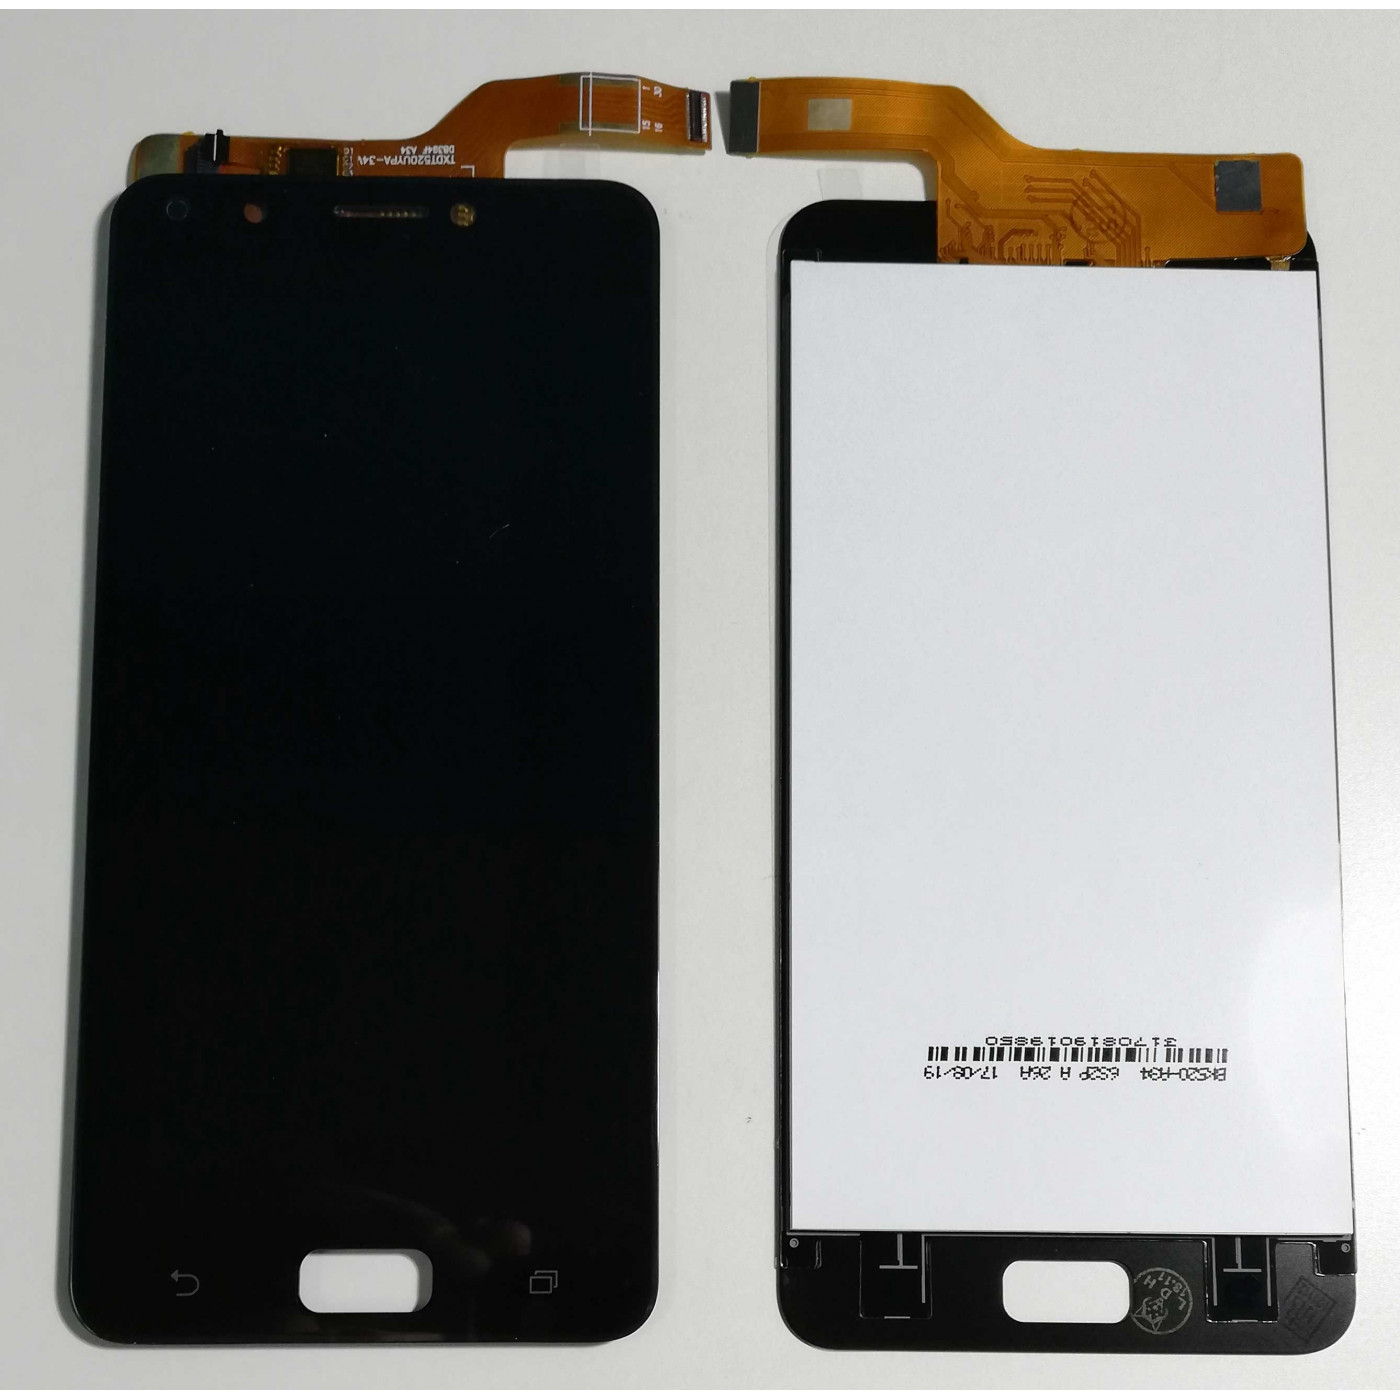 TOUCH SCREEN GLASS + LCD DISPLAY For ASUS ZENFONE 4 MAX ZC520KL X00HD 5.2 BLACK